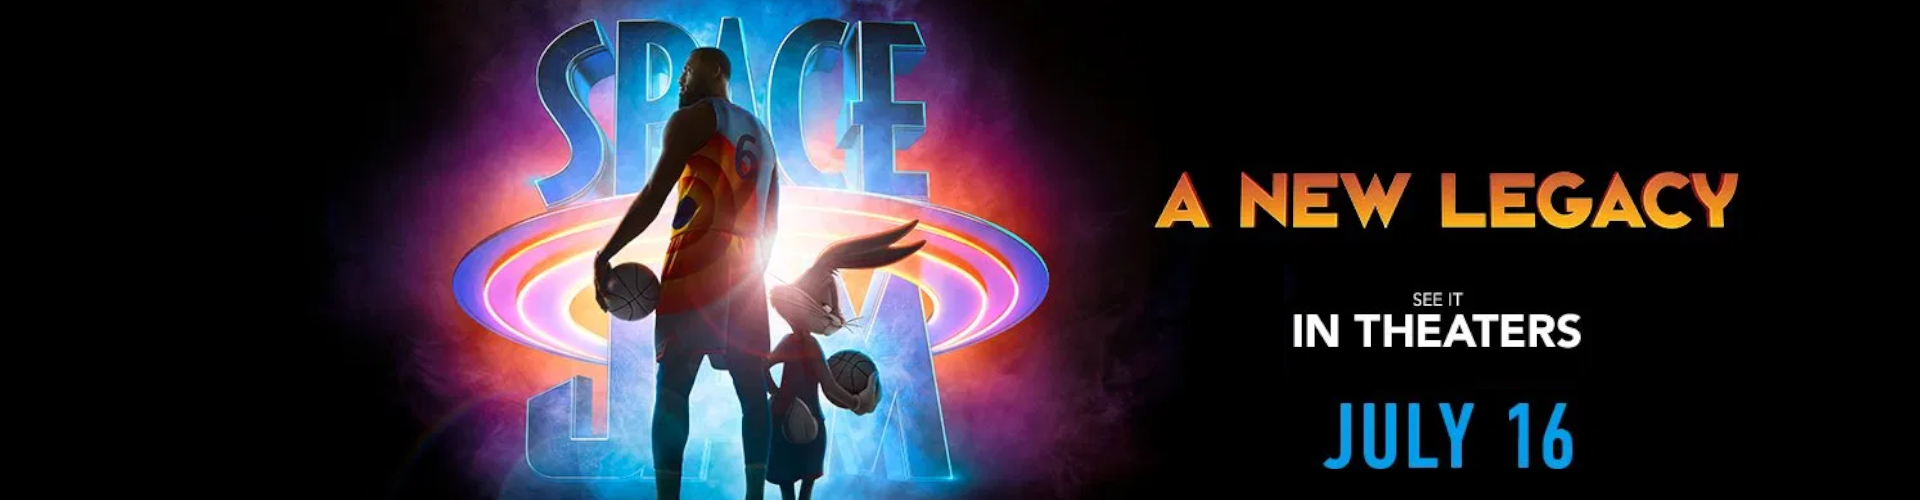 space+jam+banner